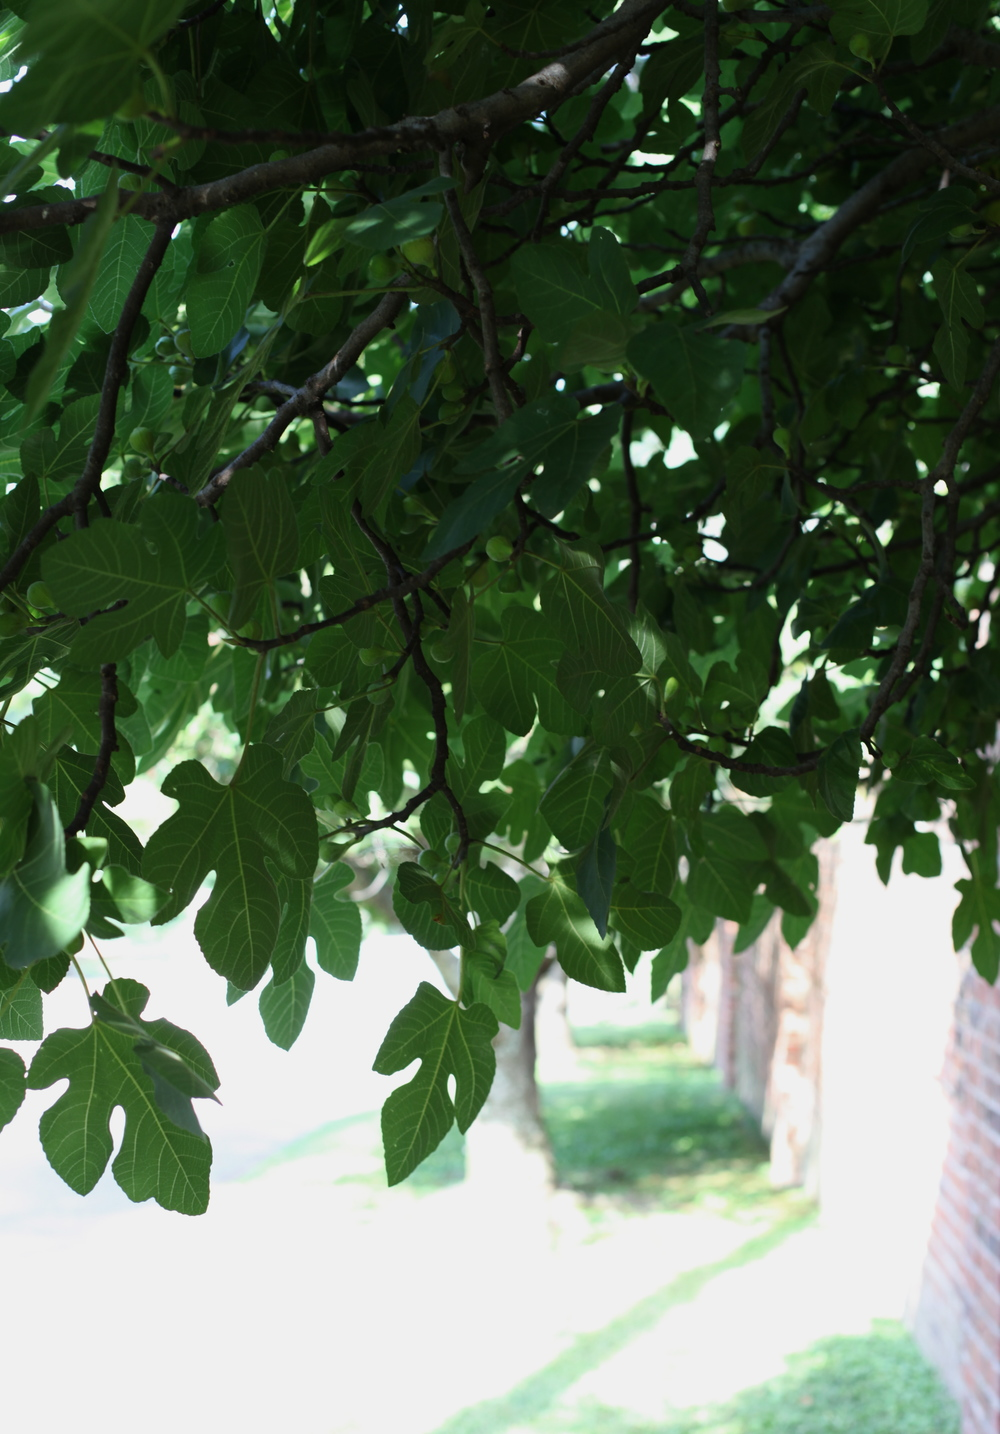 Under the shade of the fig tree